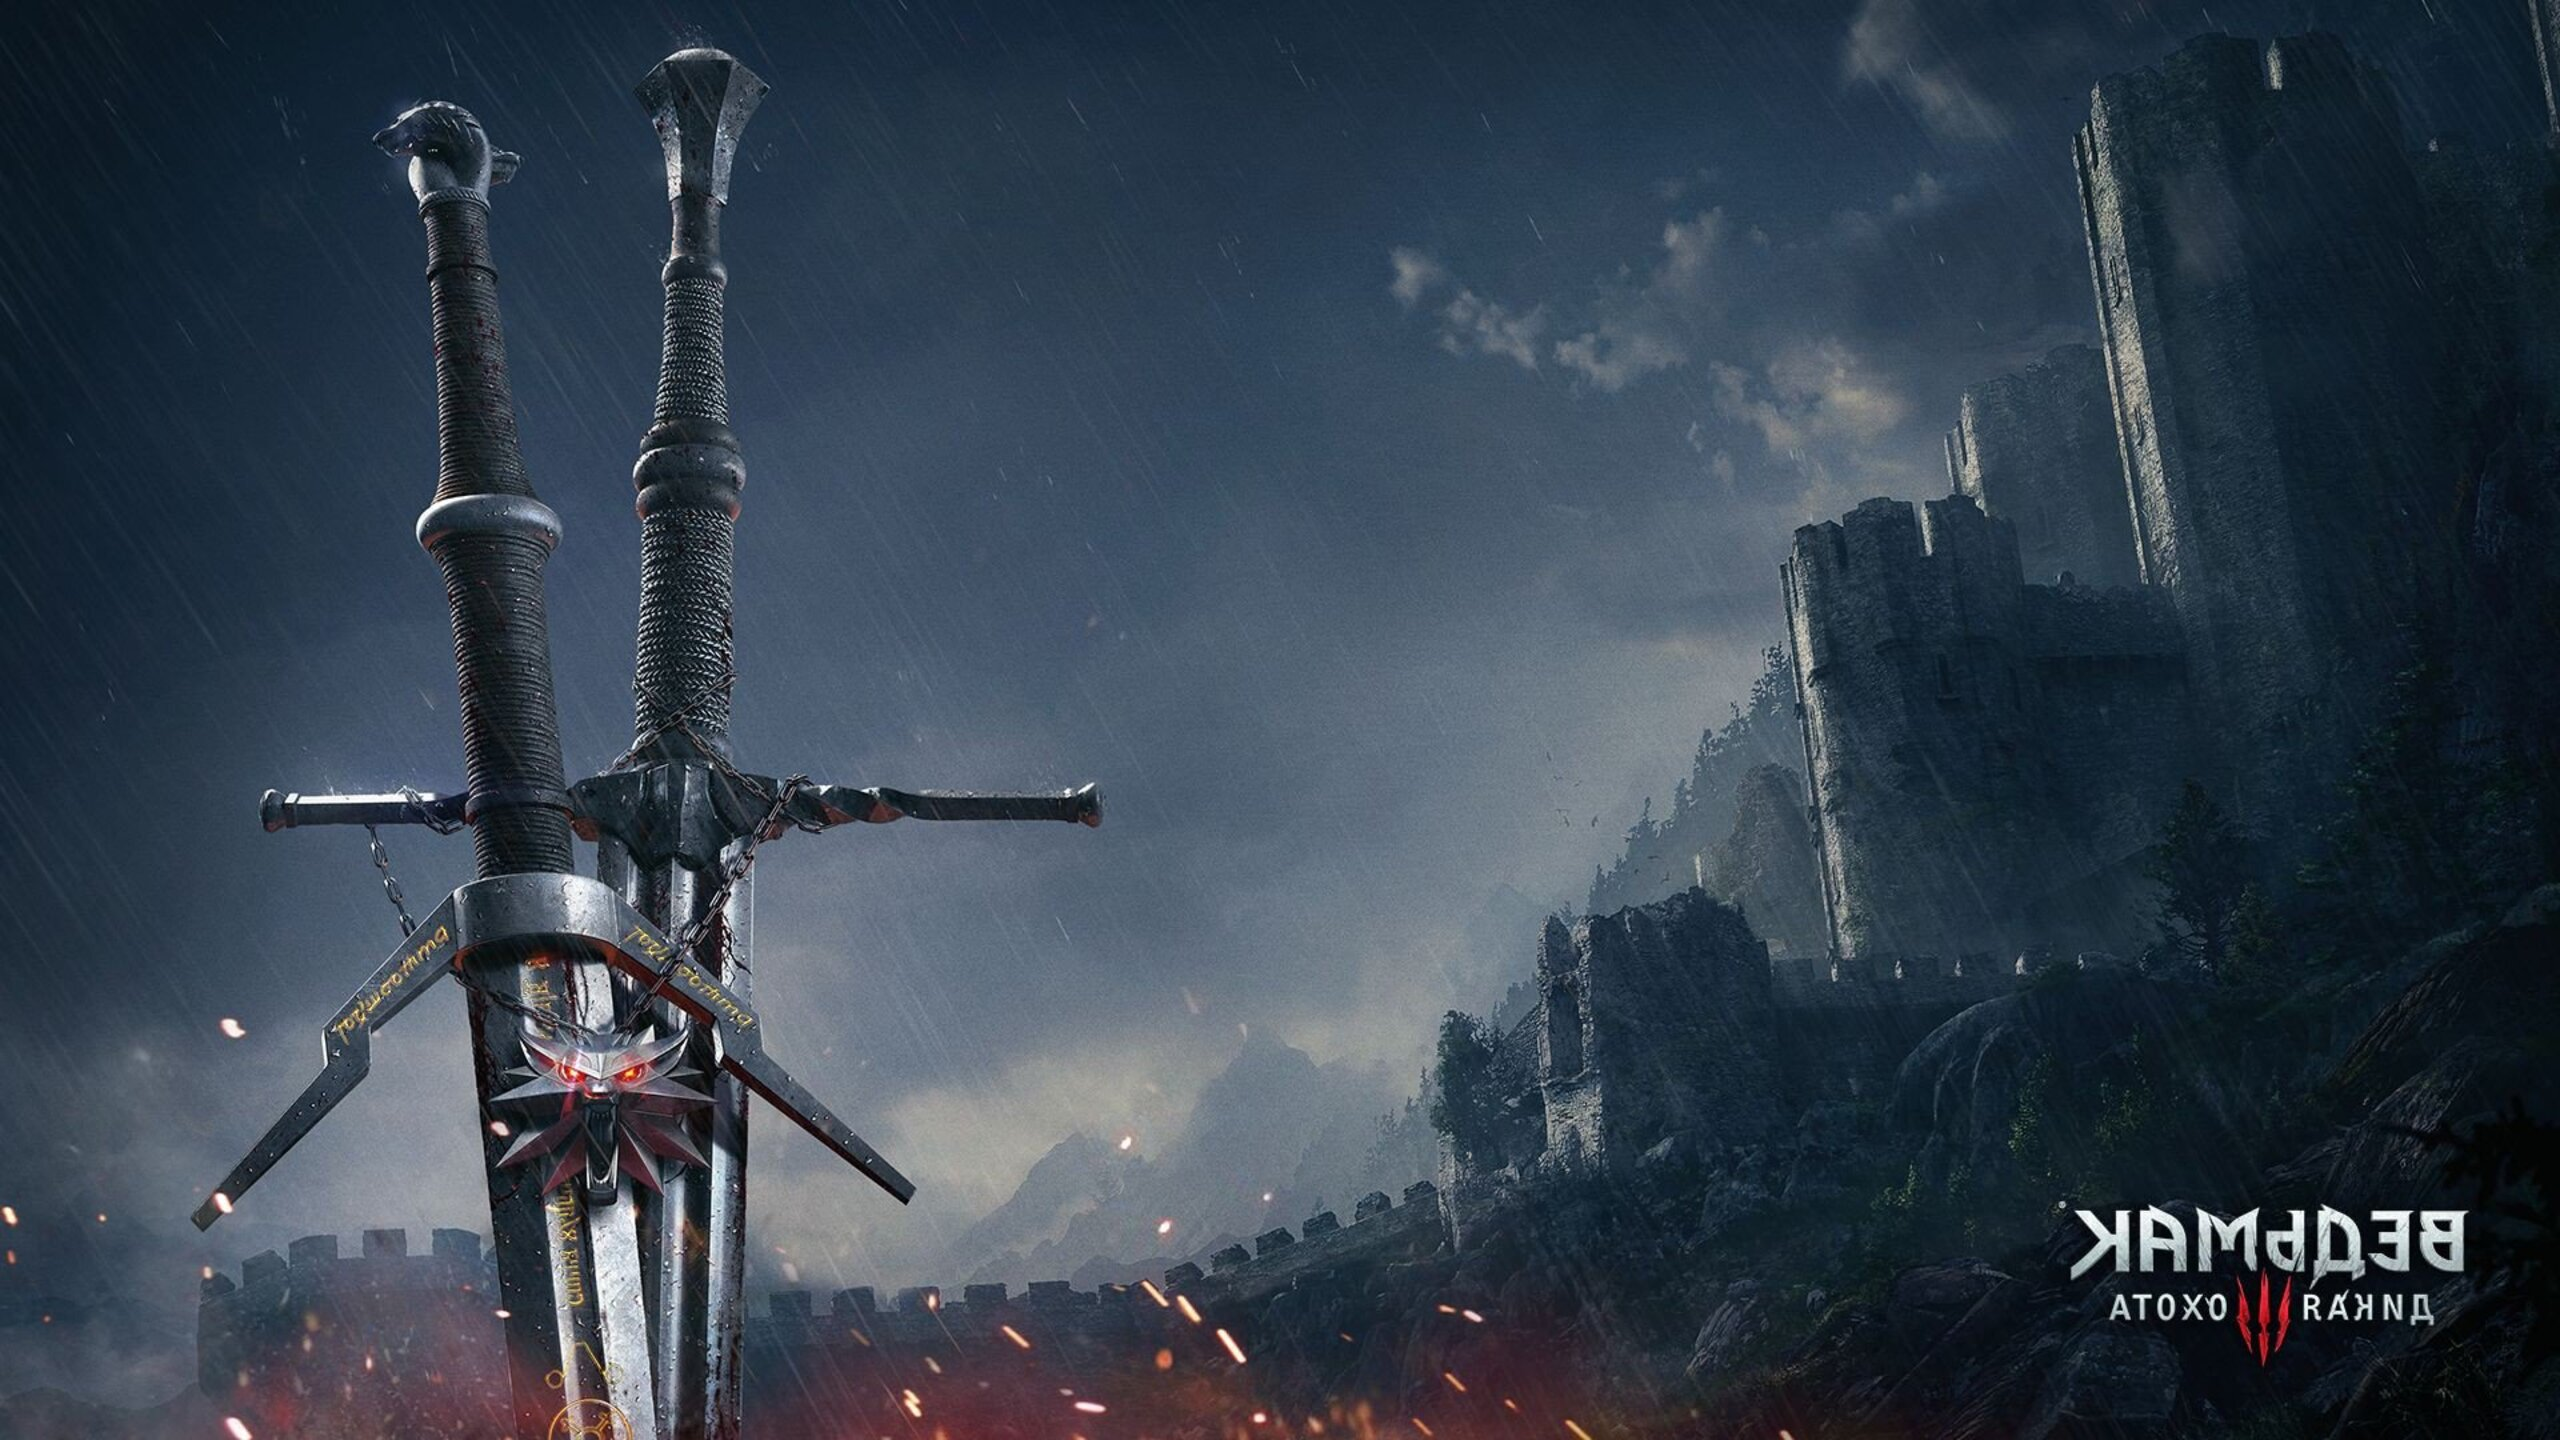 2560x1440 The Witcher 3 Sword 1440p Resolution Hd 4k Wallpapers